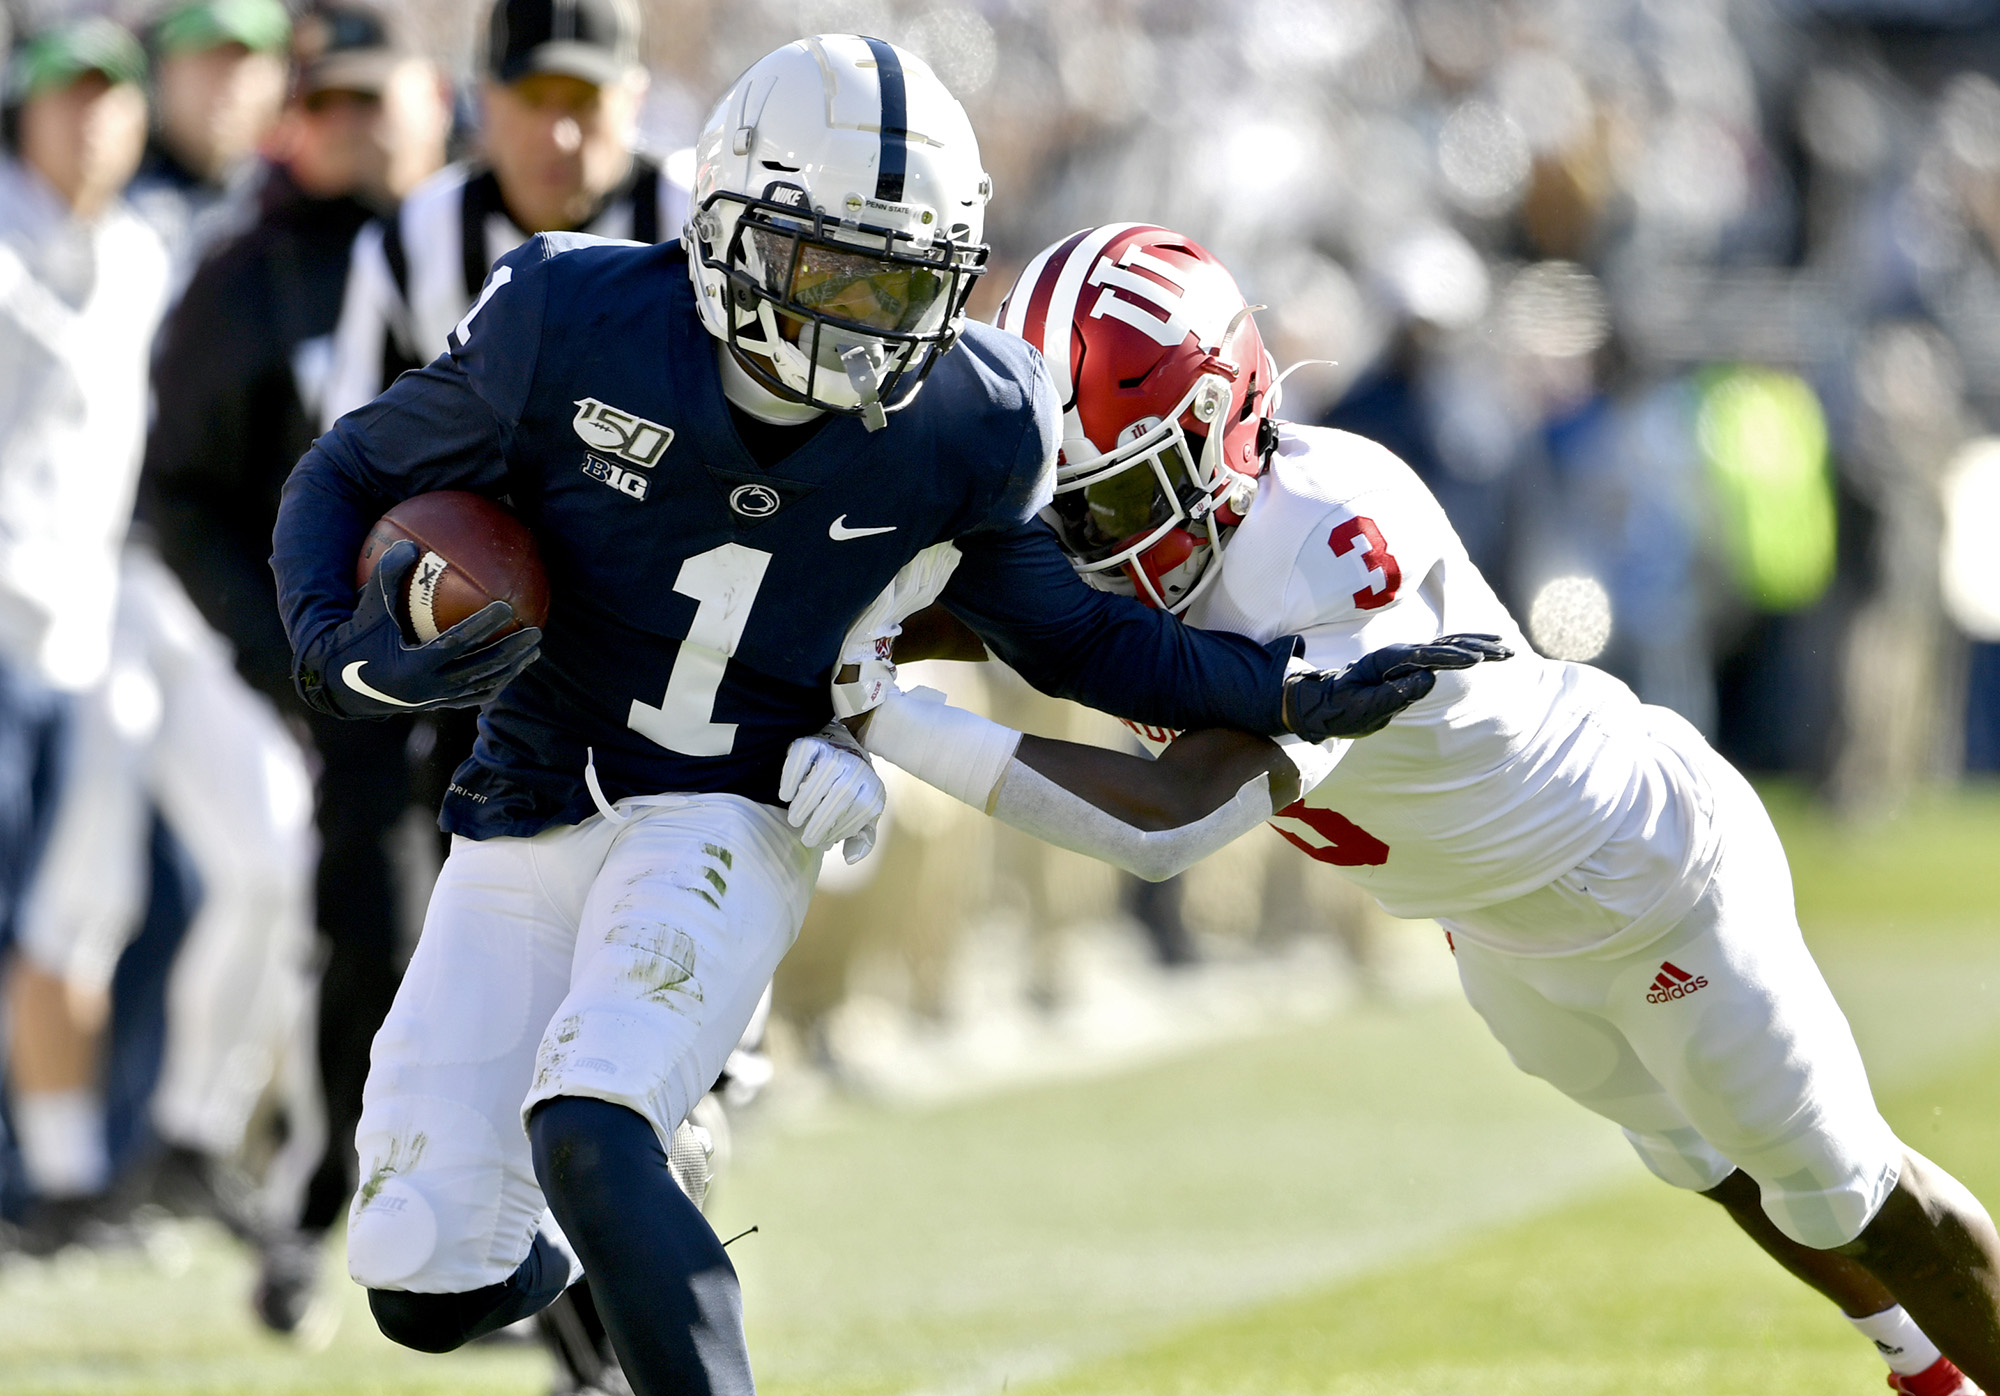 Indiana at Penn State